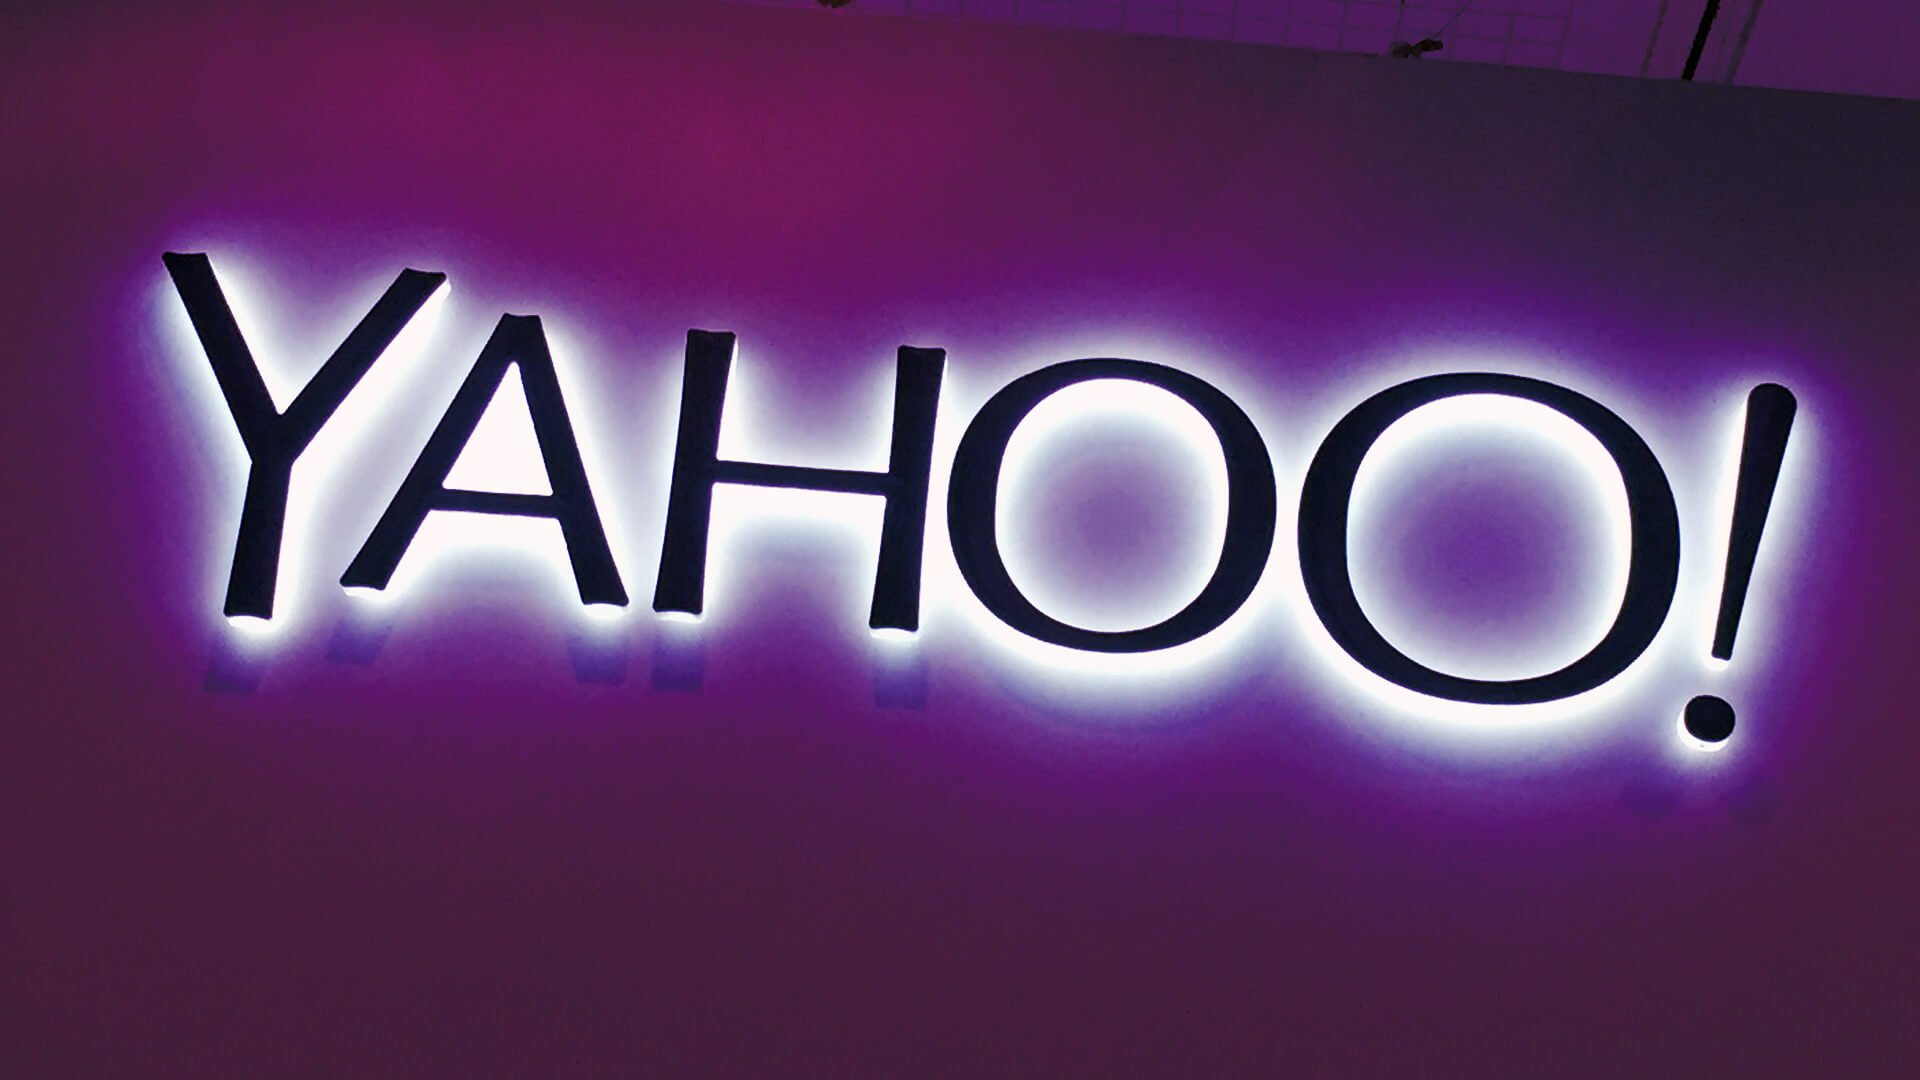 Yahoo testing new search bar with logo on the right not the left 1920x1080